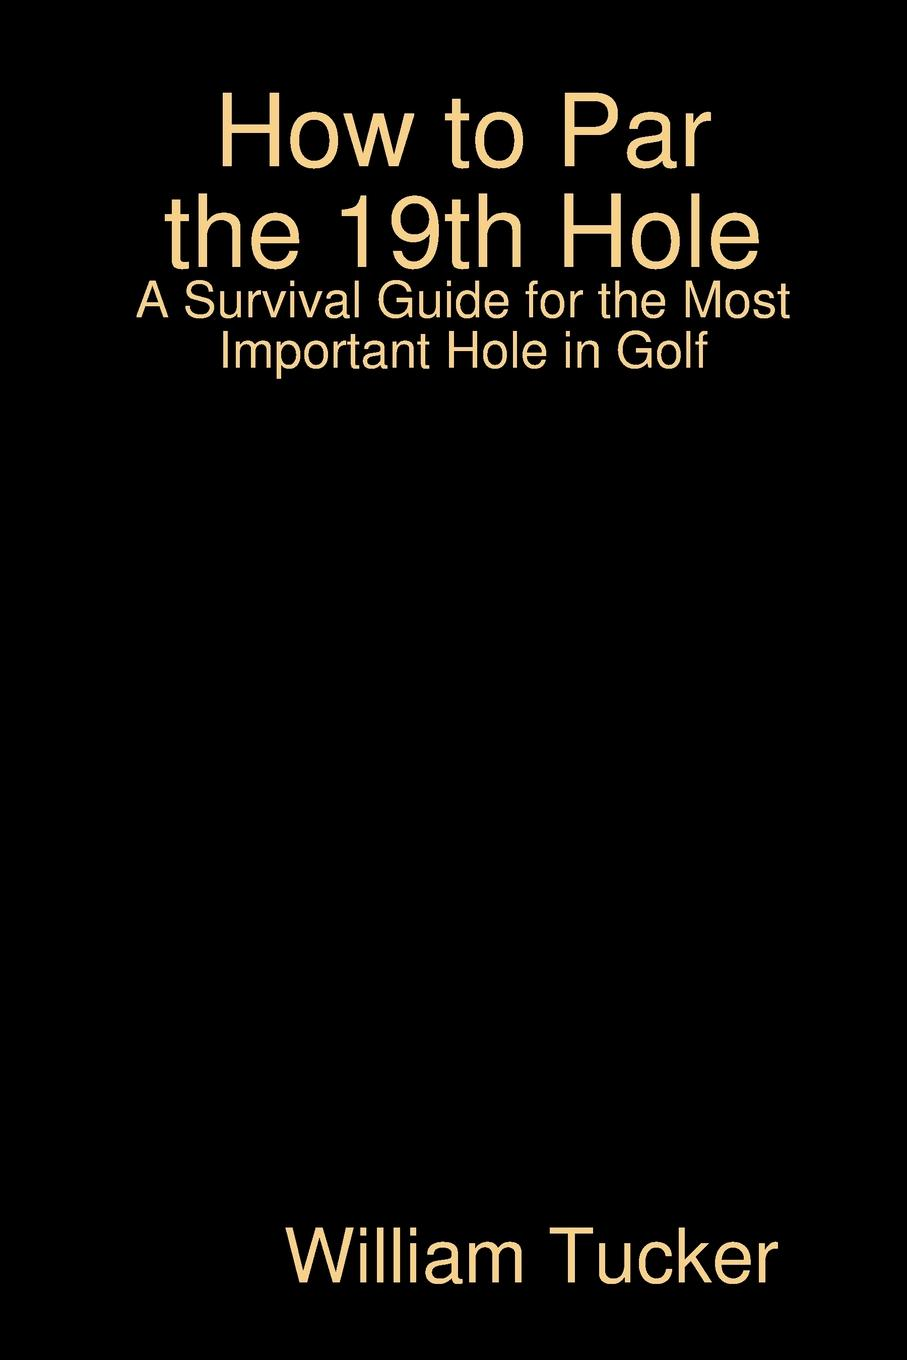 William Tucker How to Par the 19th Hole все цены